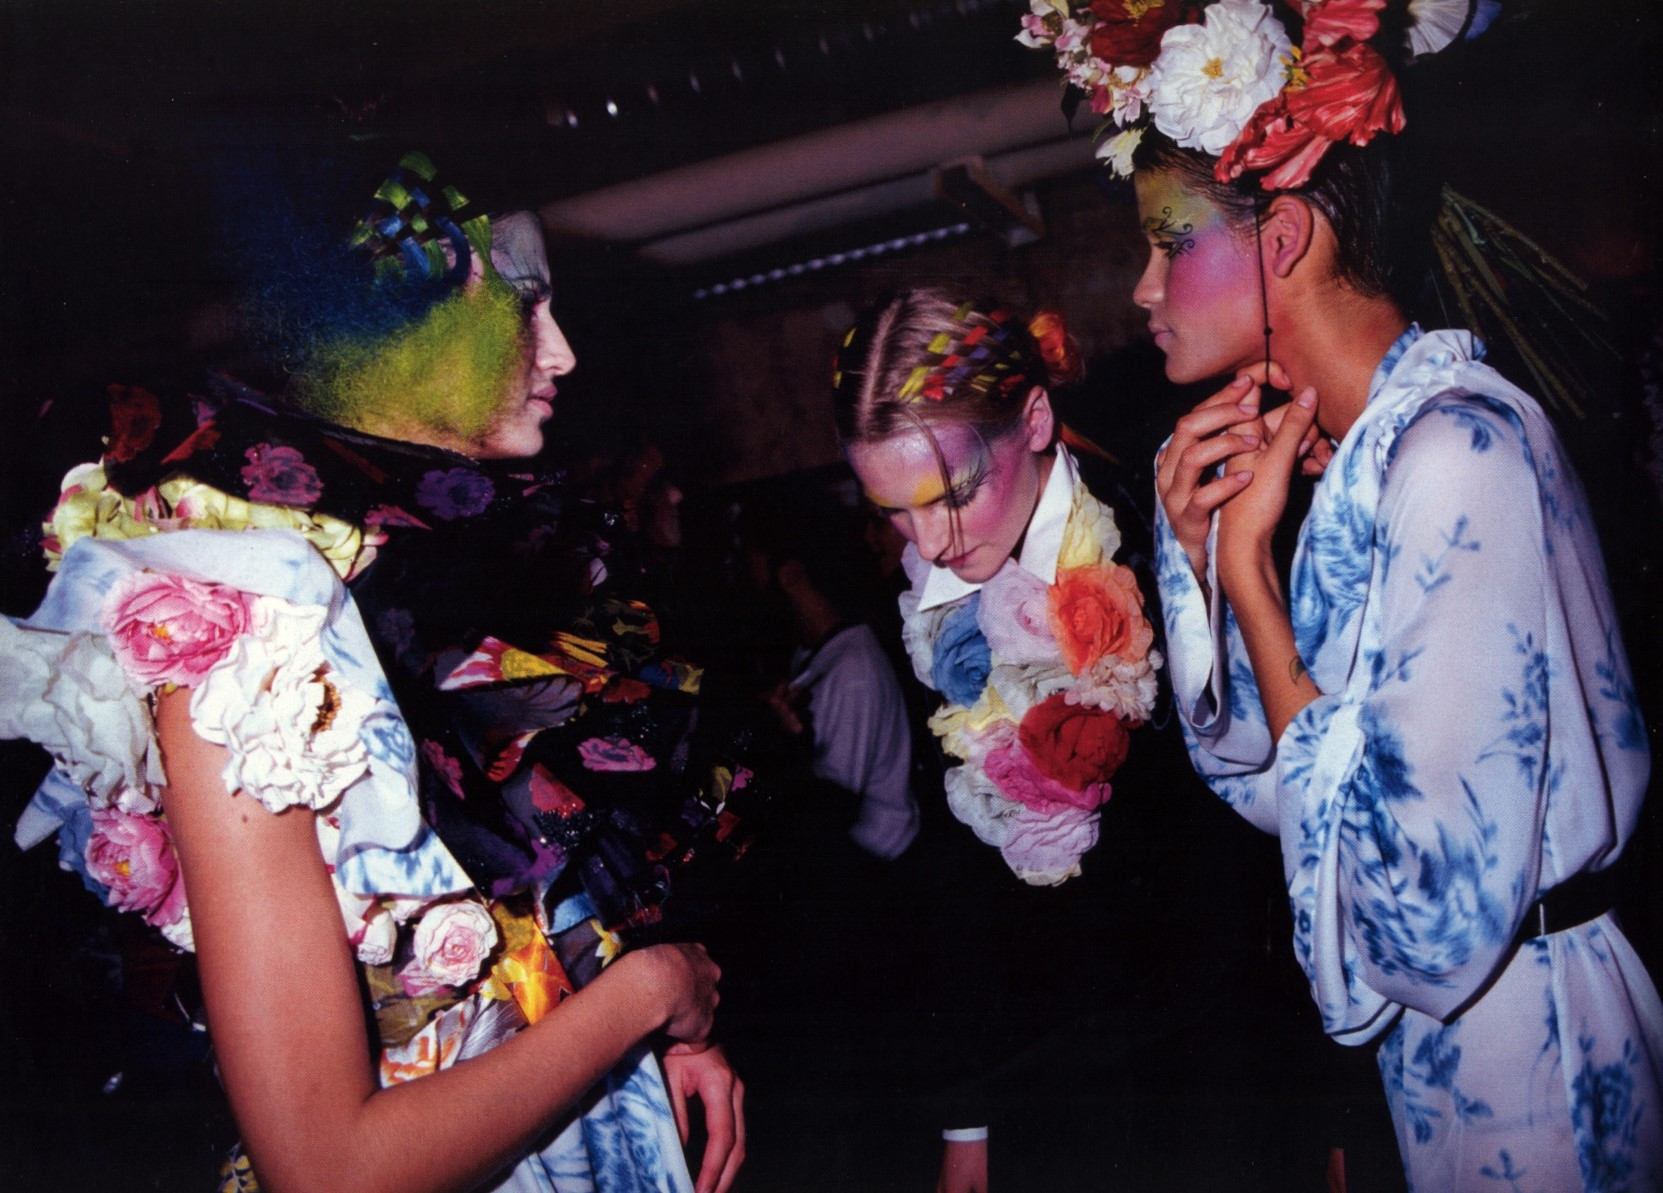 viktor and rolf backstage photography roxanne lowit v magazine 22 march april 2003